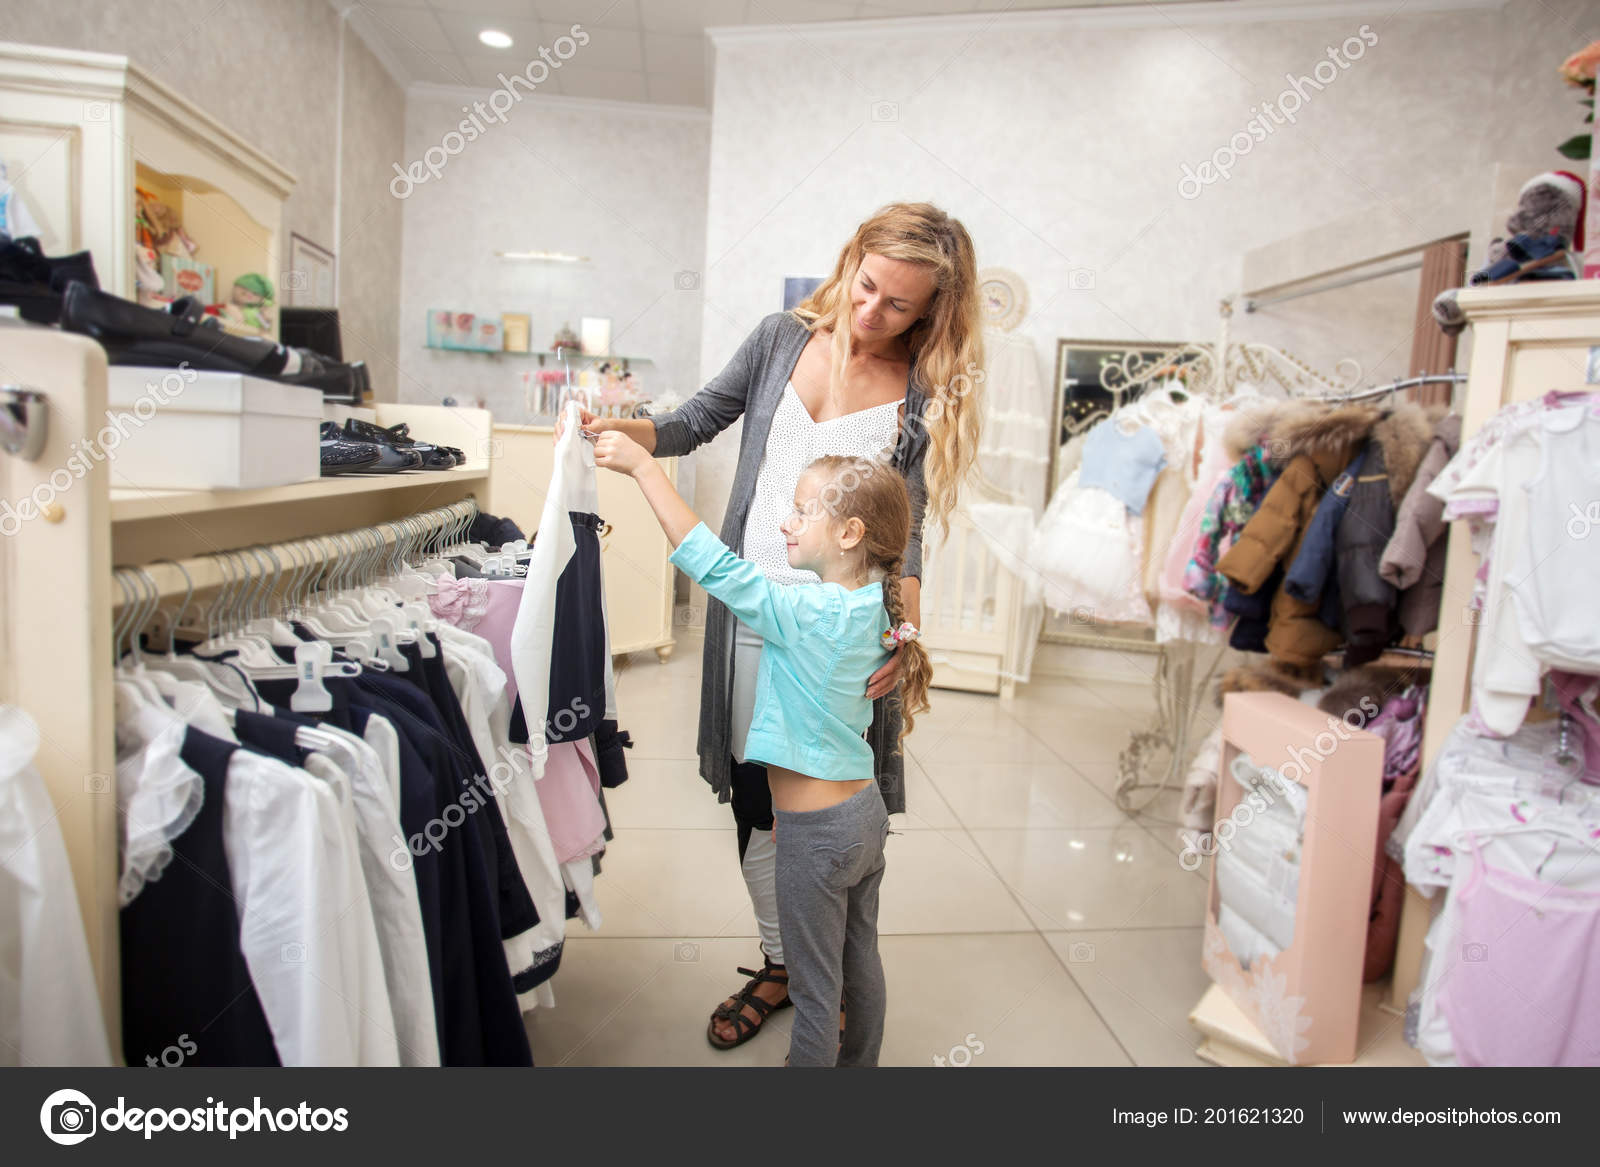 82640d560 Child Mother Children Store Happy Girl Choosing Clothes Family Shopping —  Stock Photo